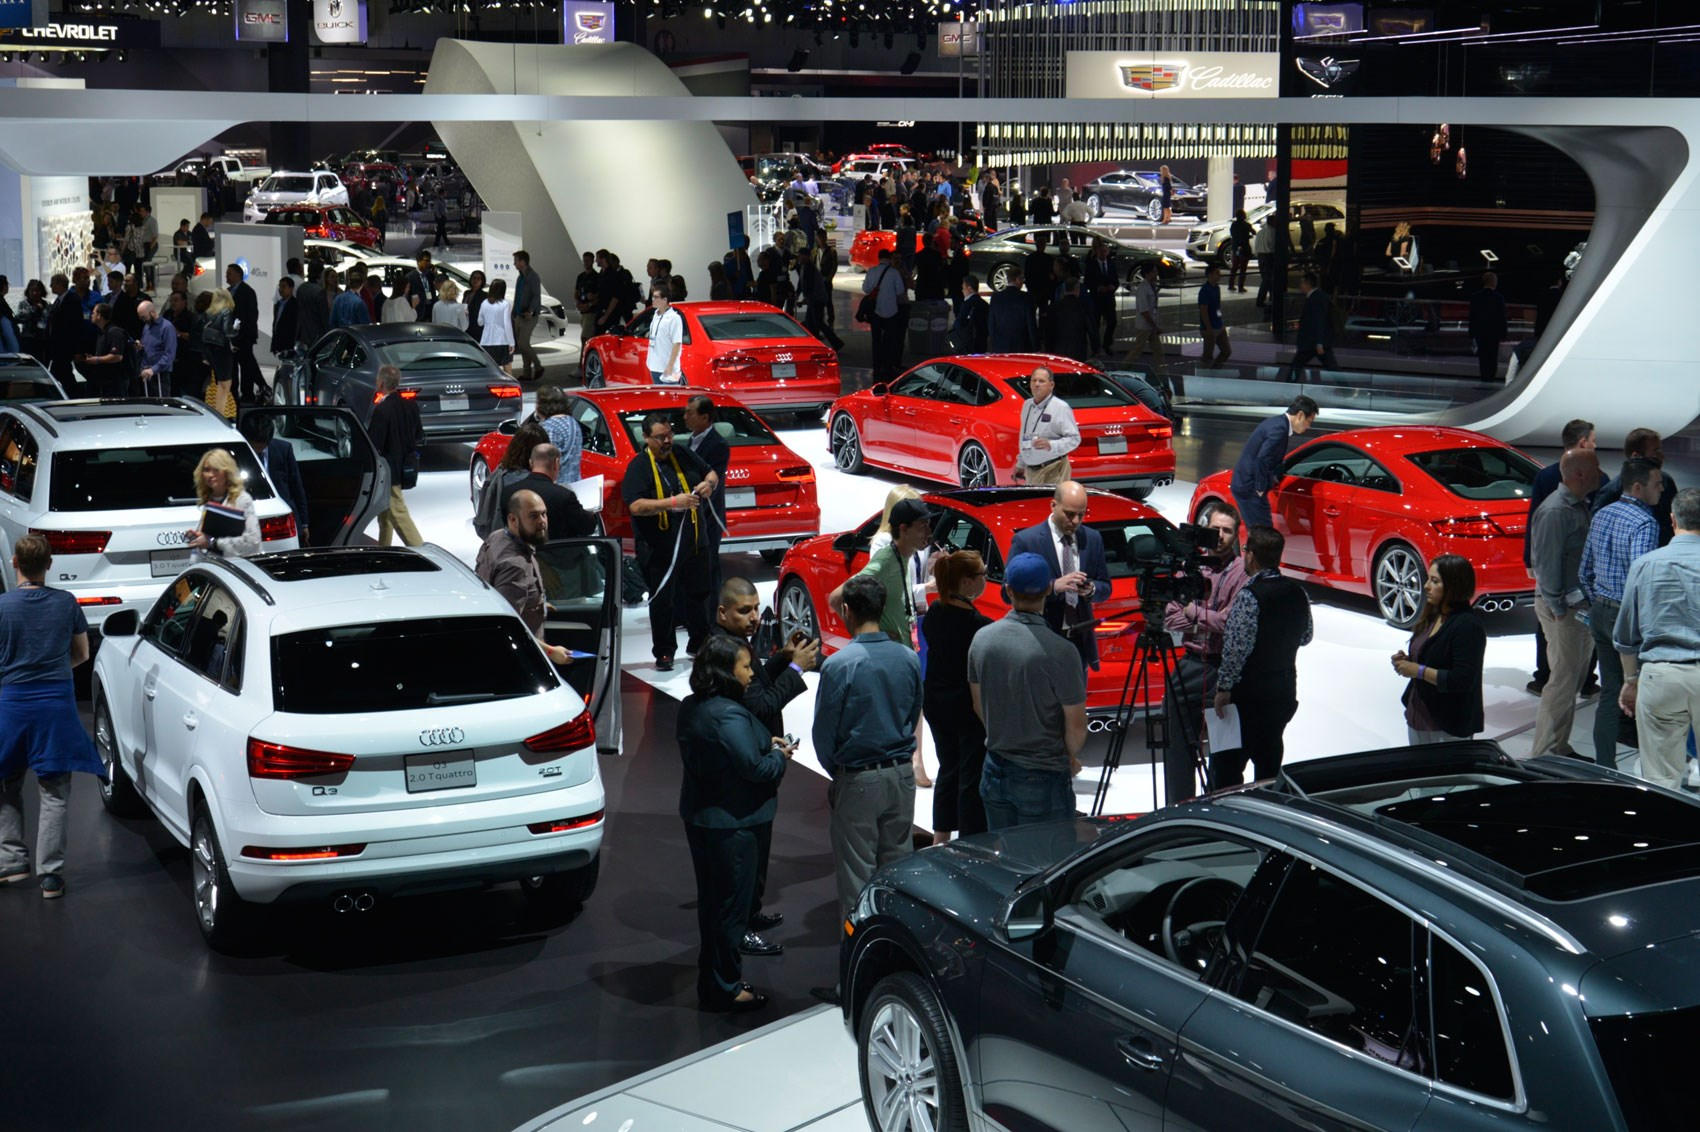 Los Angeles Auto Show Report Insight Trends And Pictures - Car show in los angeles this weekend